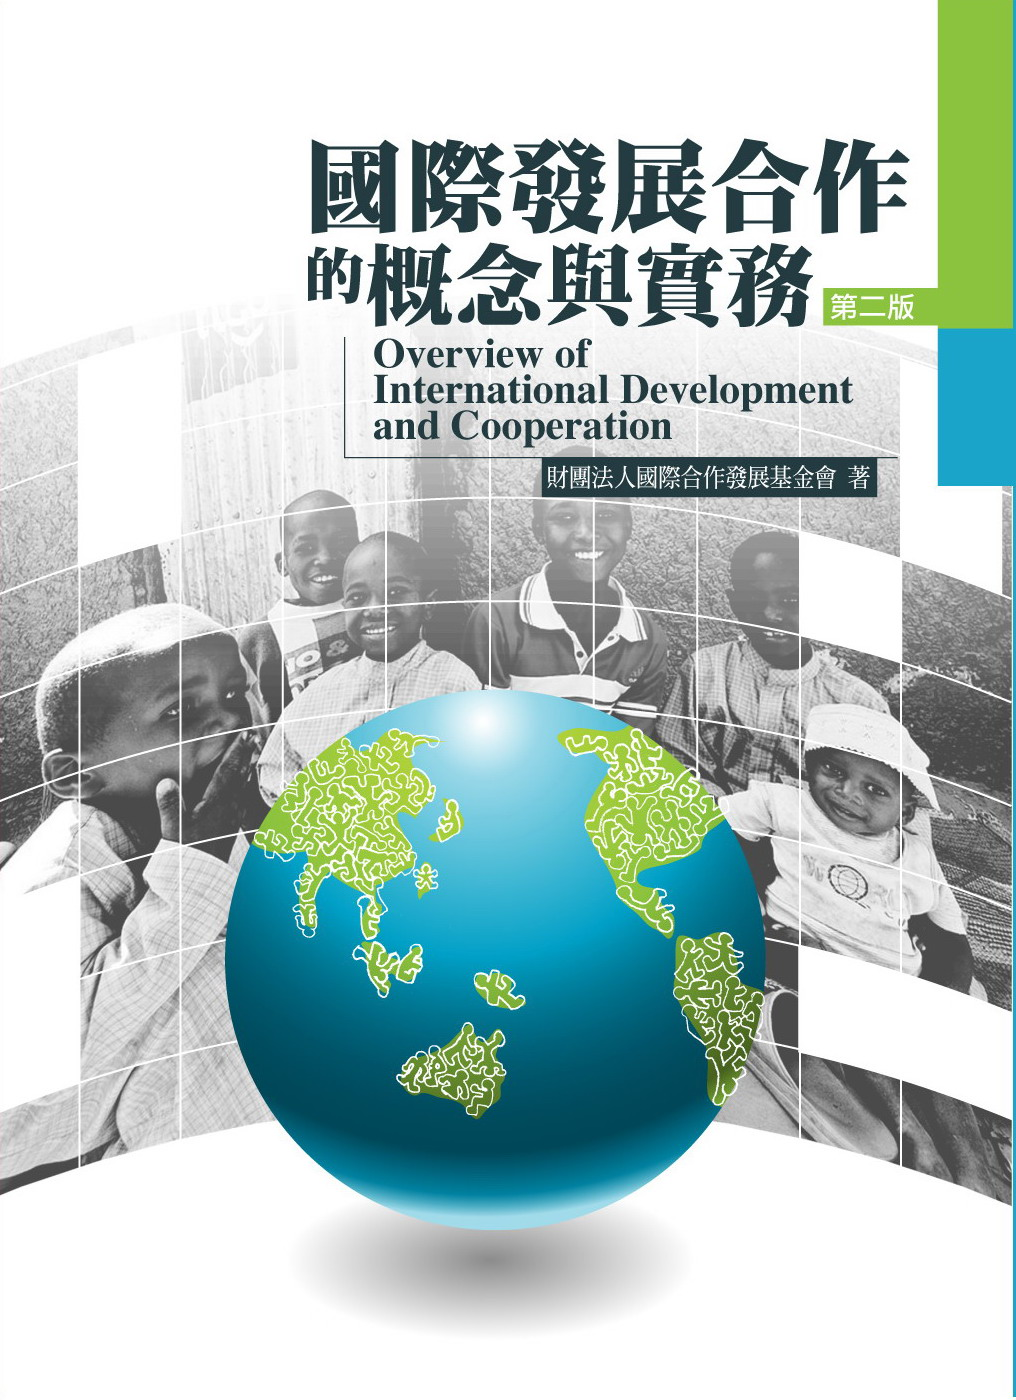 Overview of International Development and Cooperation